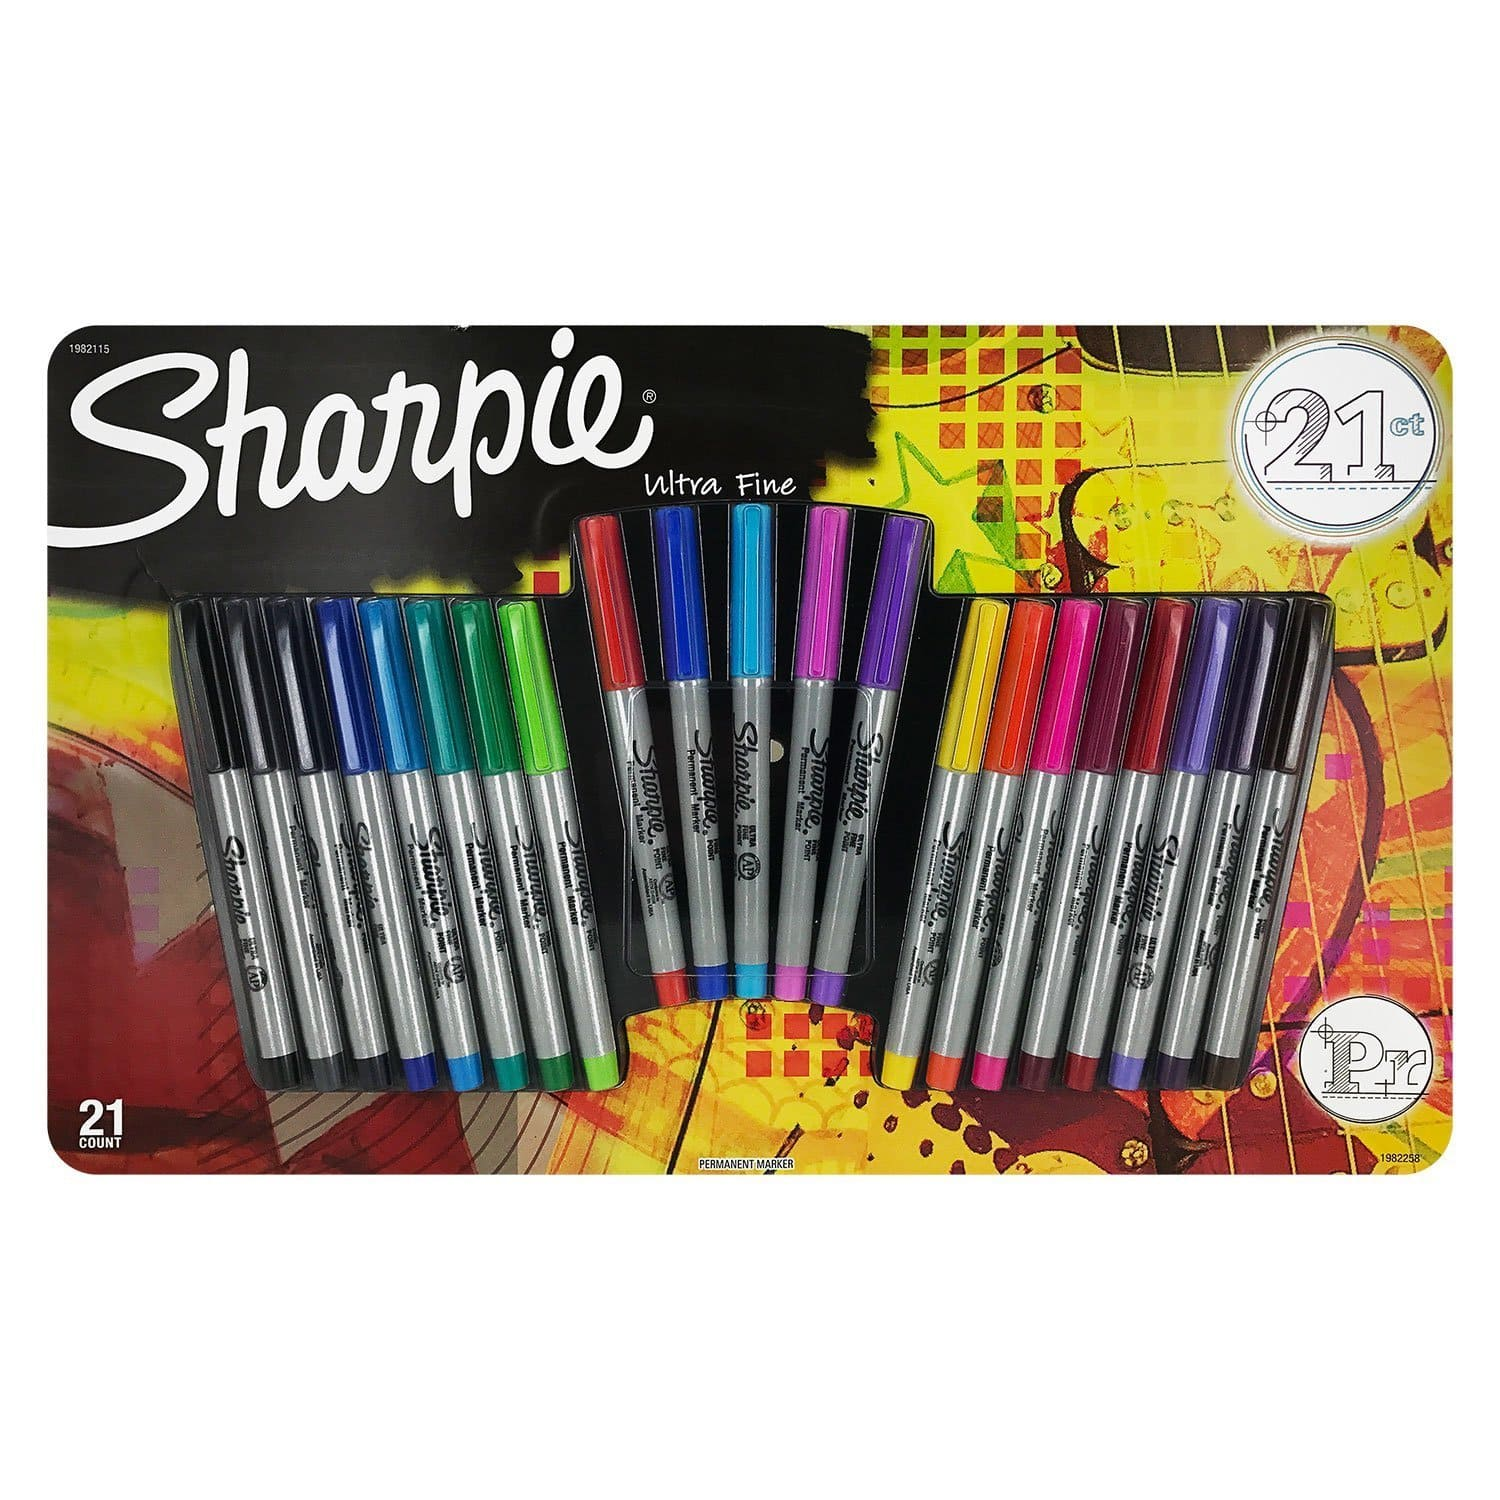 21-Count Sharpie Ultra Fine Point Permanent Markers (Assorted Colors) $8.70 + Free Shipping w/ Prime or $25+